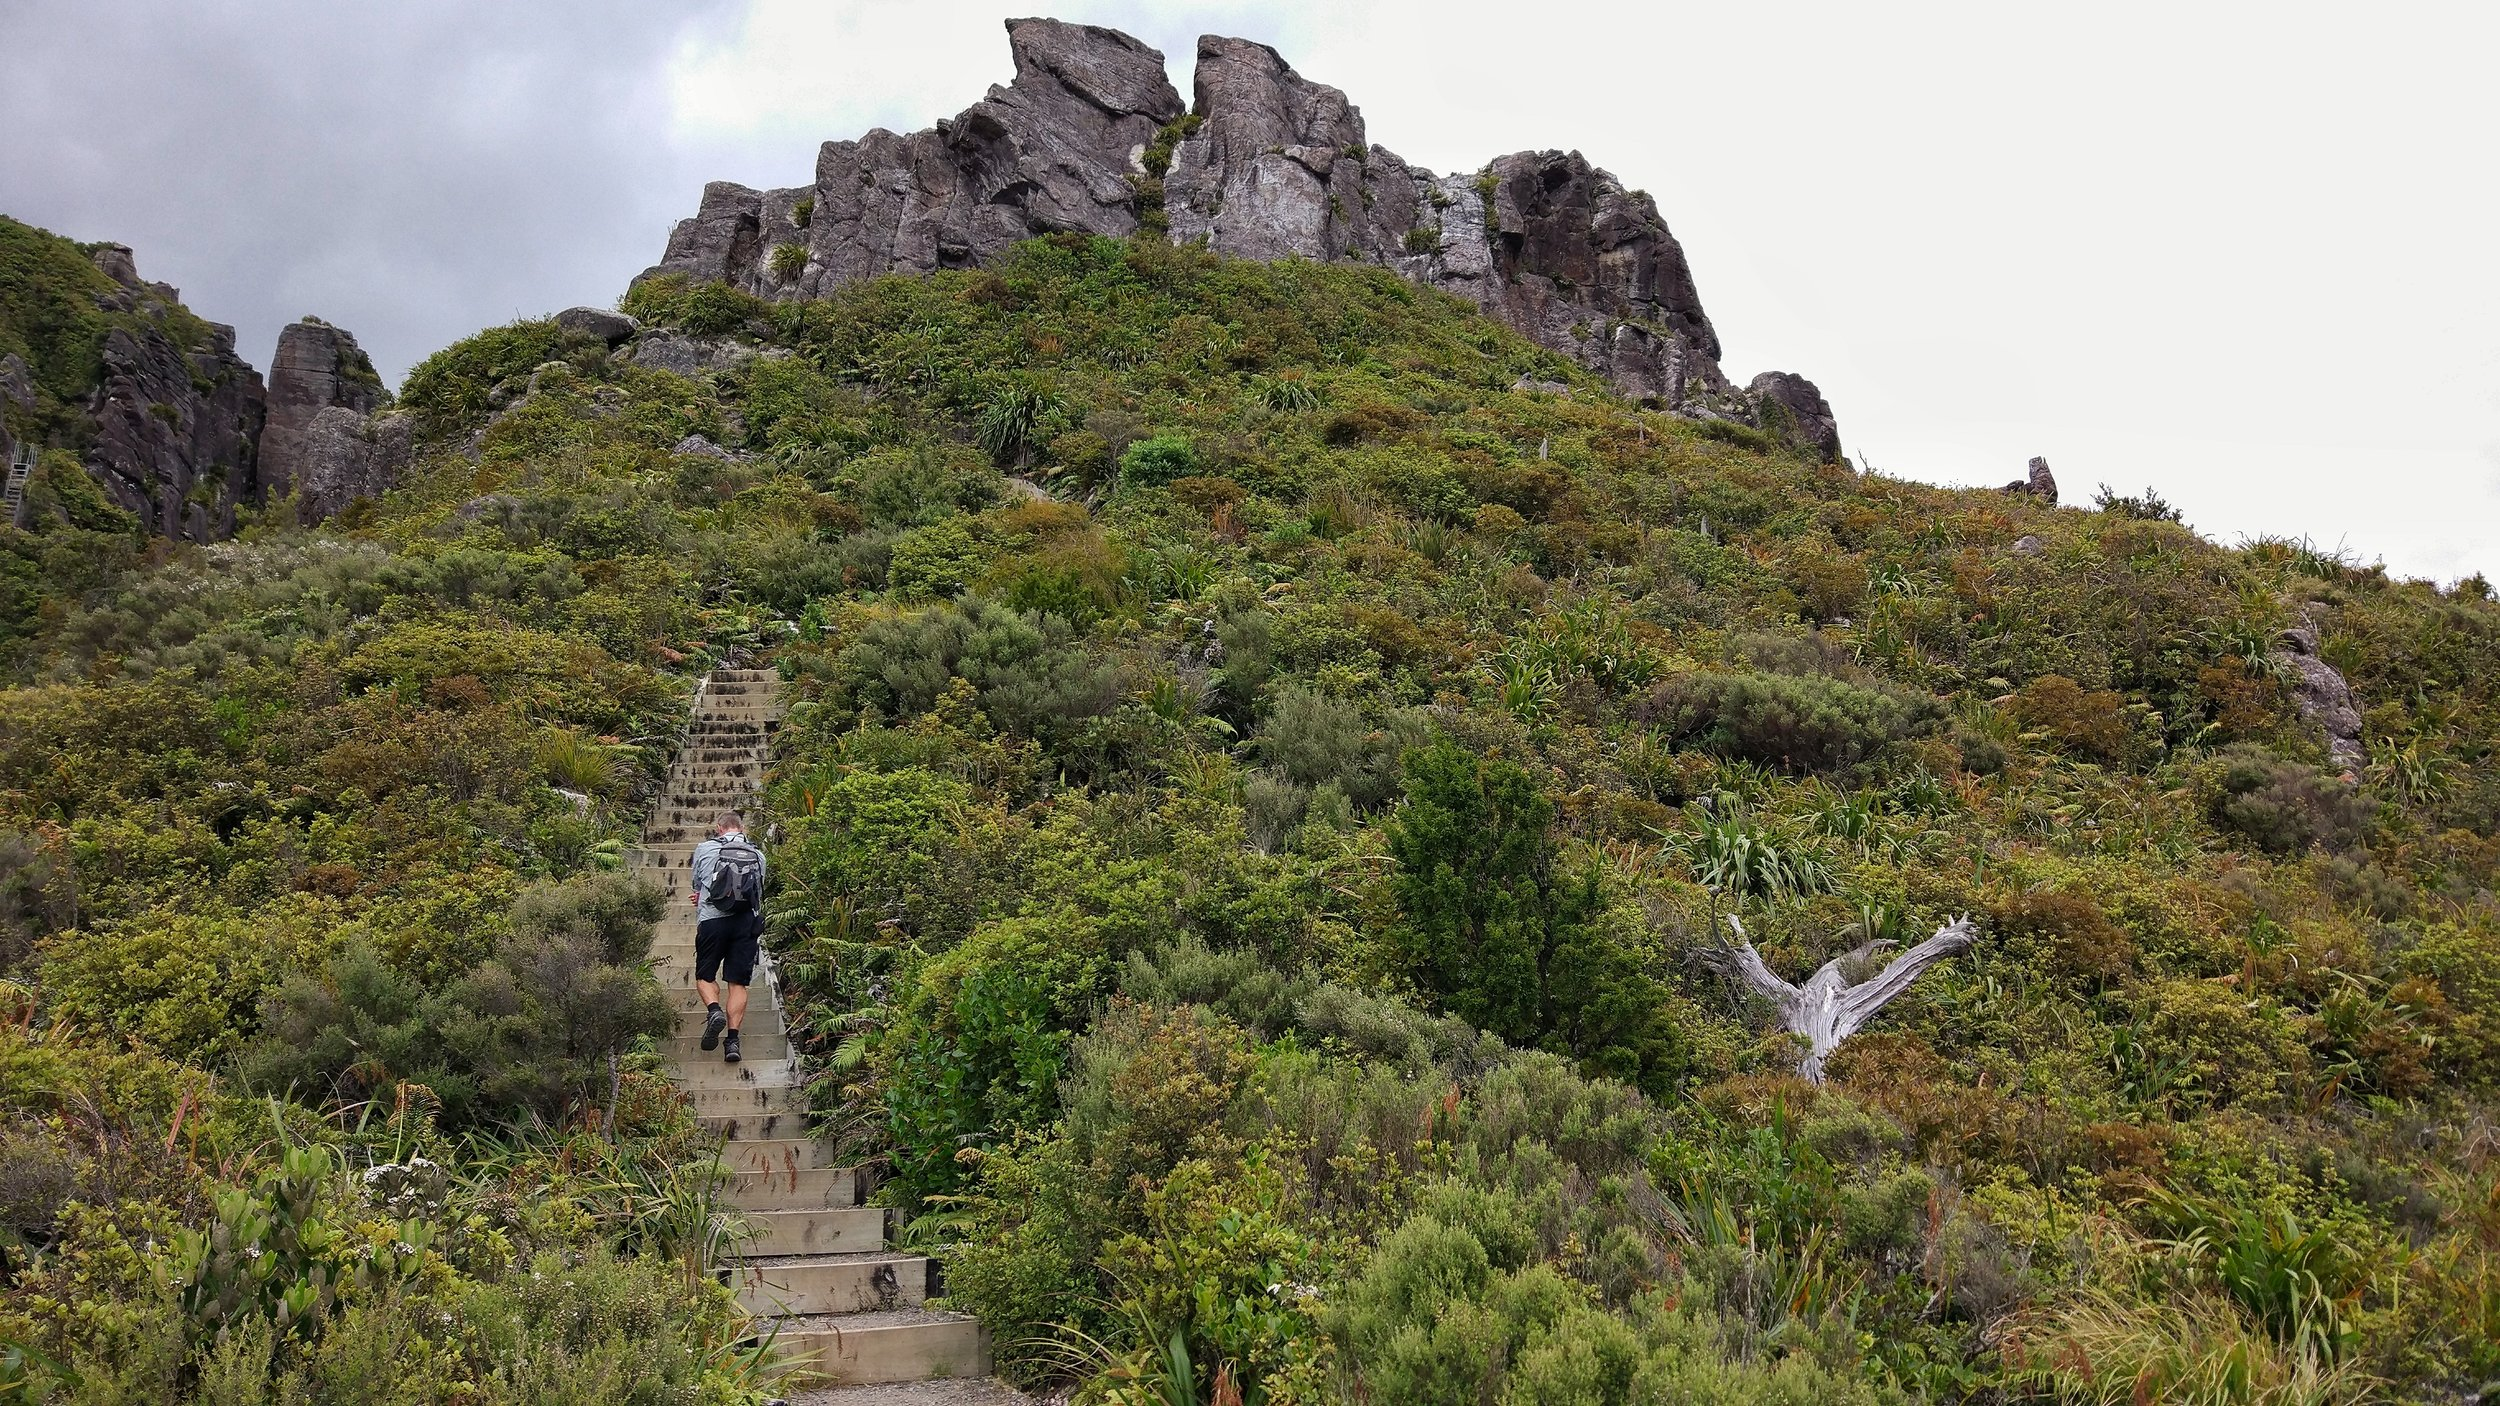 20180101_new_zealand_coromandel_kauaeranga_valley_pinnacles_walk_stairs_to_top.jpeg